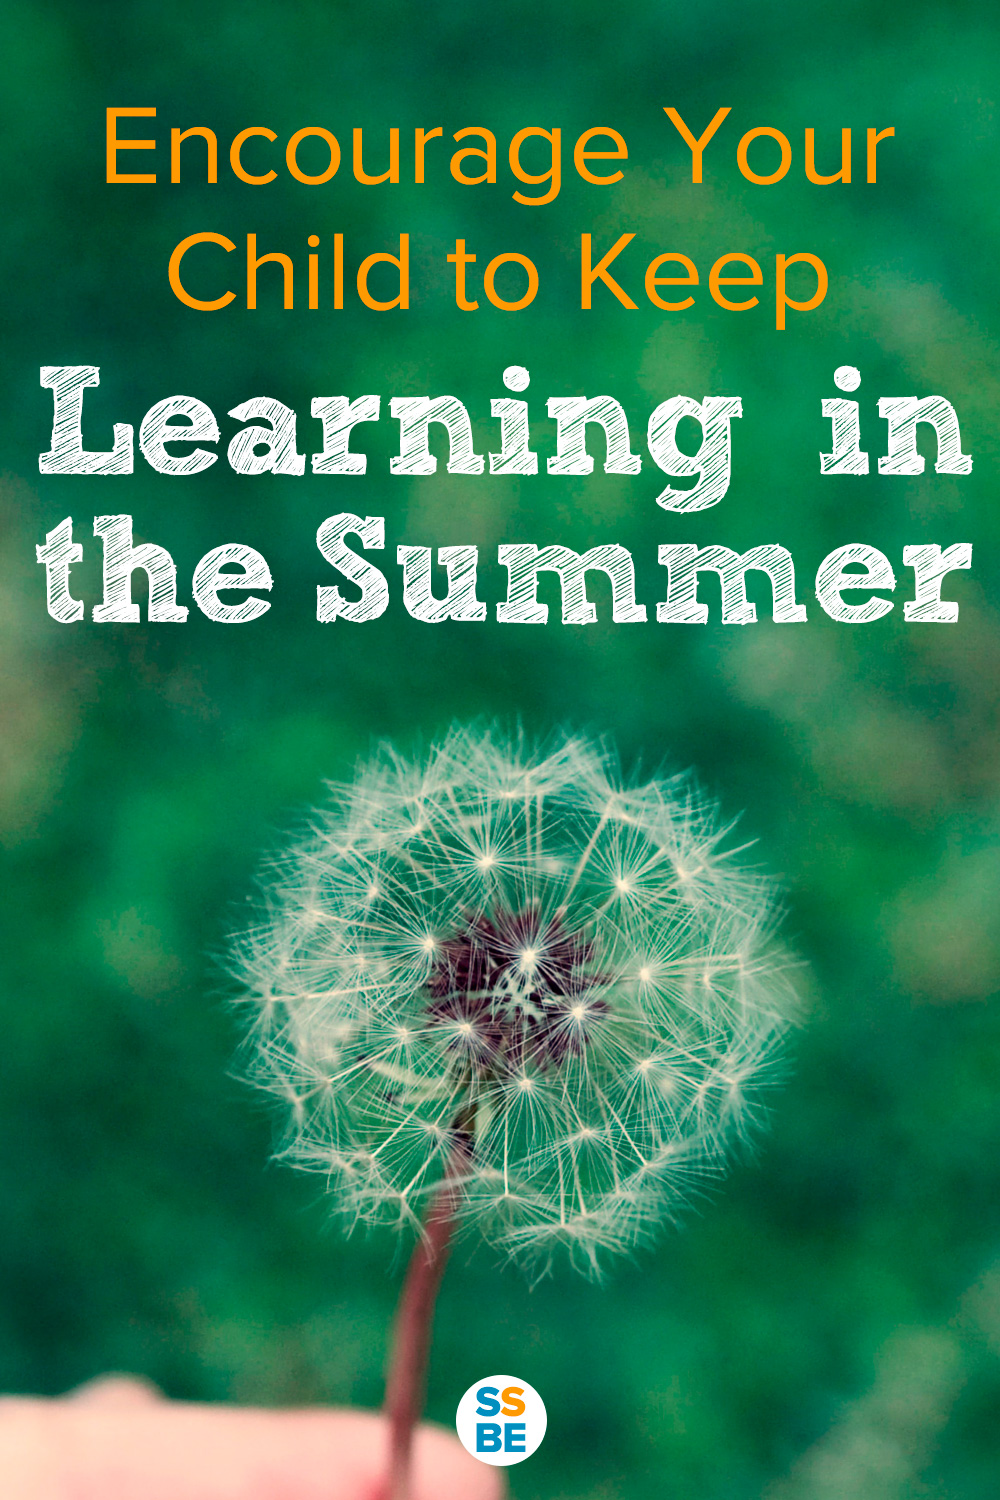 Kids can forget what they learned during the long summer months. Make summer learning for children fun and memorable! Avoid summer brain drain with these tips on how to keep your child learning in the summer.